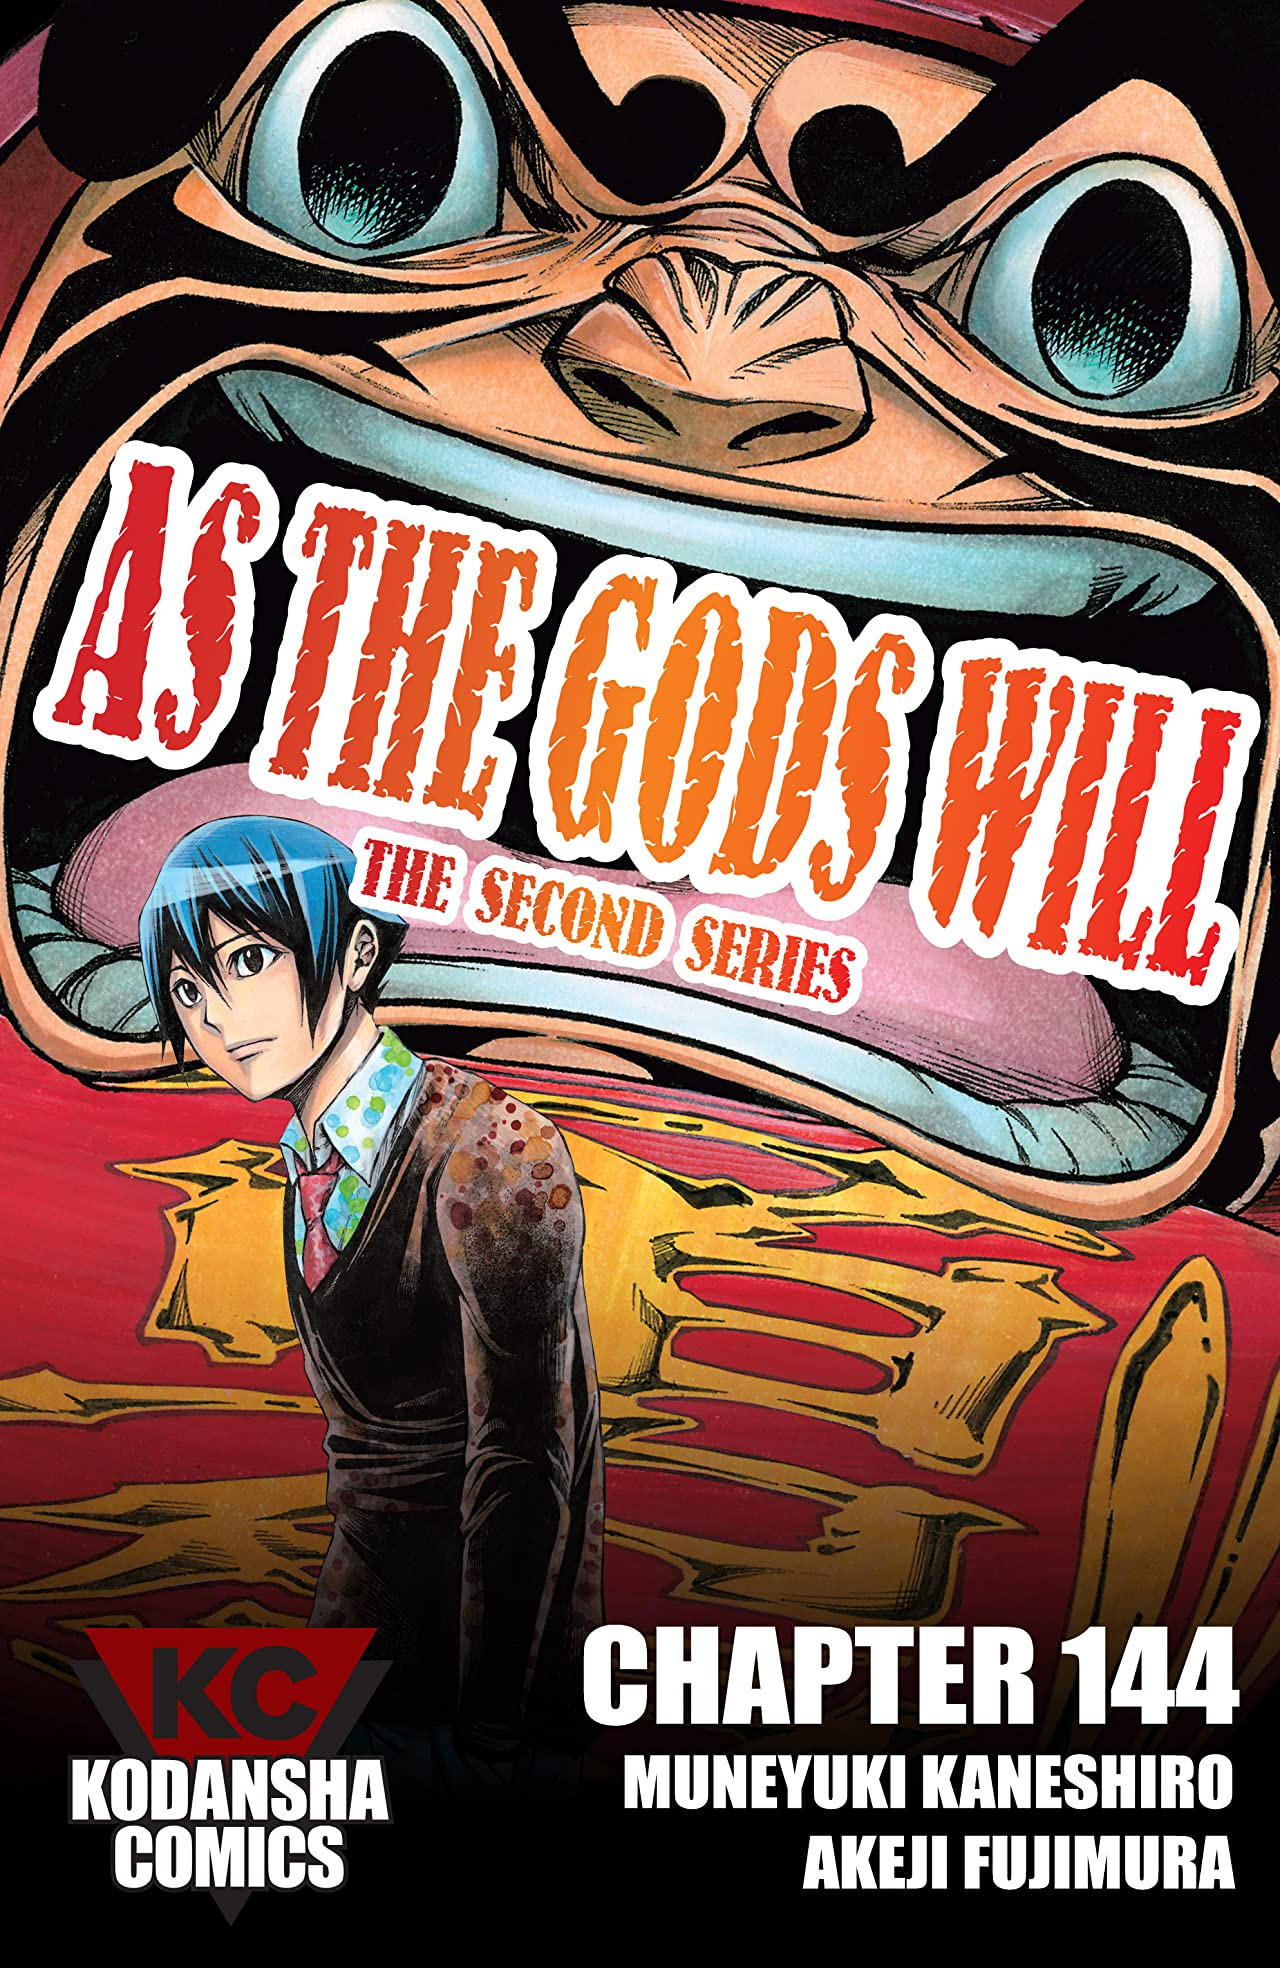 As The Gods Will: The Second Series #144